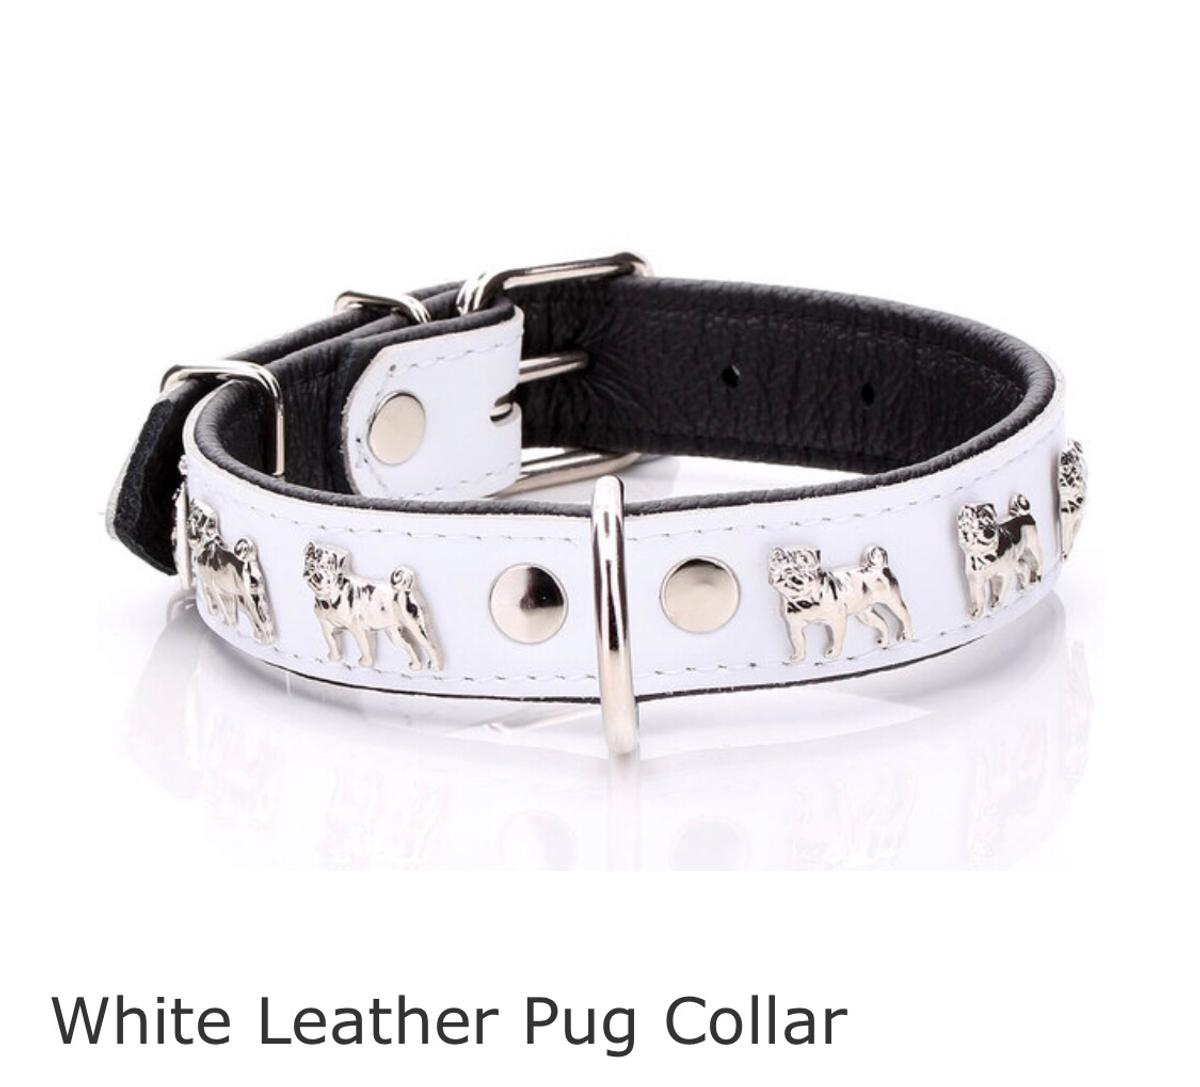 PLEASE NO TIME WASTERS!!!!! Brand new leather dog collar for a pug, measurements on image above